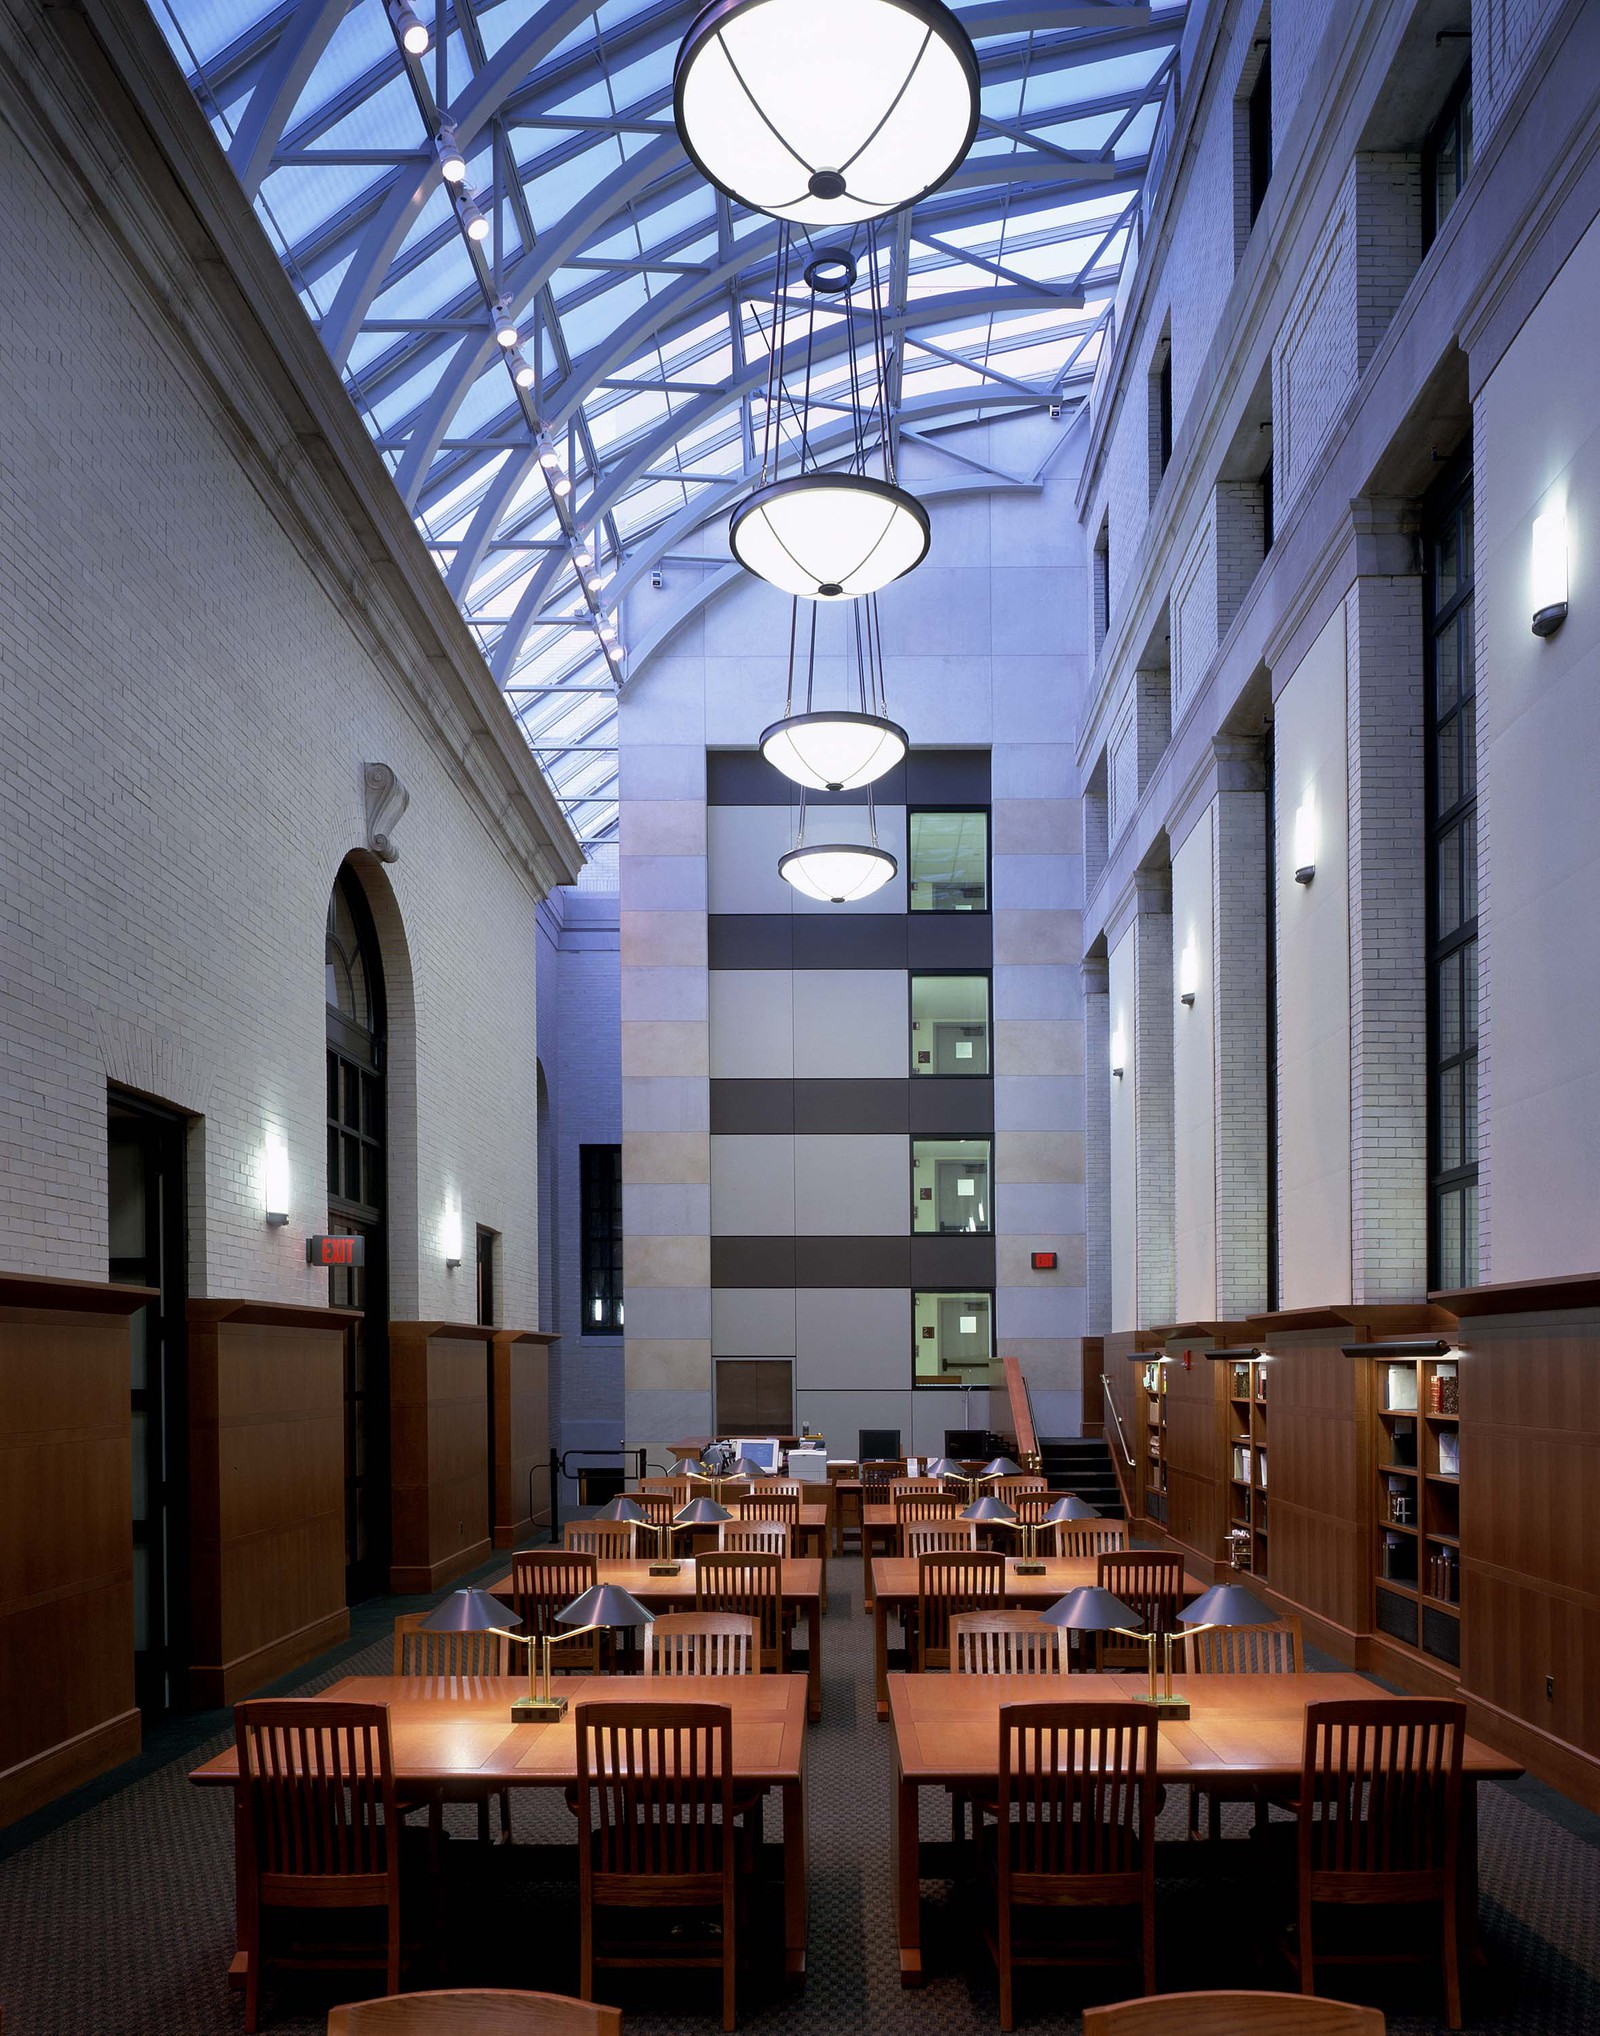 Another view of the high ceilings in the entryway. This space work so effectively. There is the grand atrium paired with the warm wood wall and furniture. The architects did an excellent job making this job timeless and so fitting for the Harvard community.